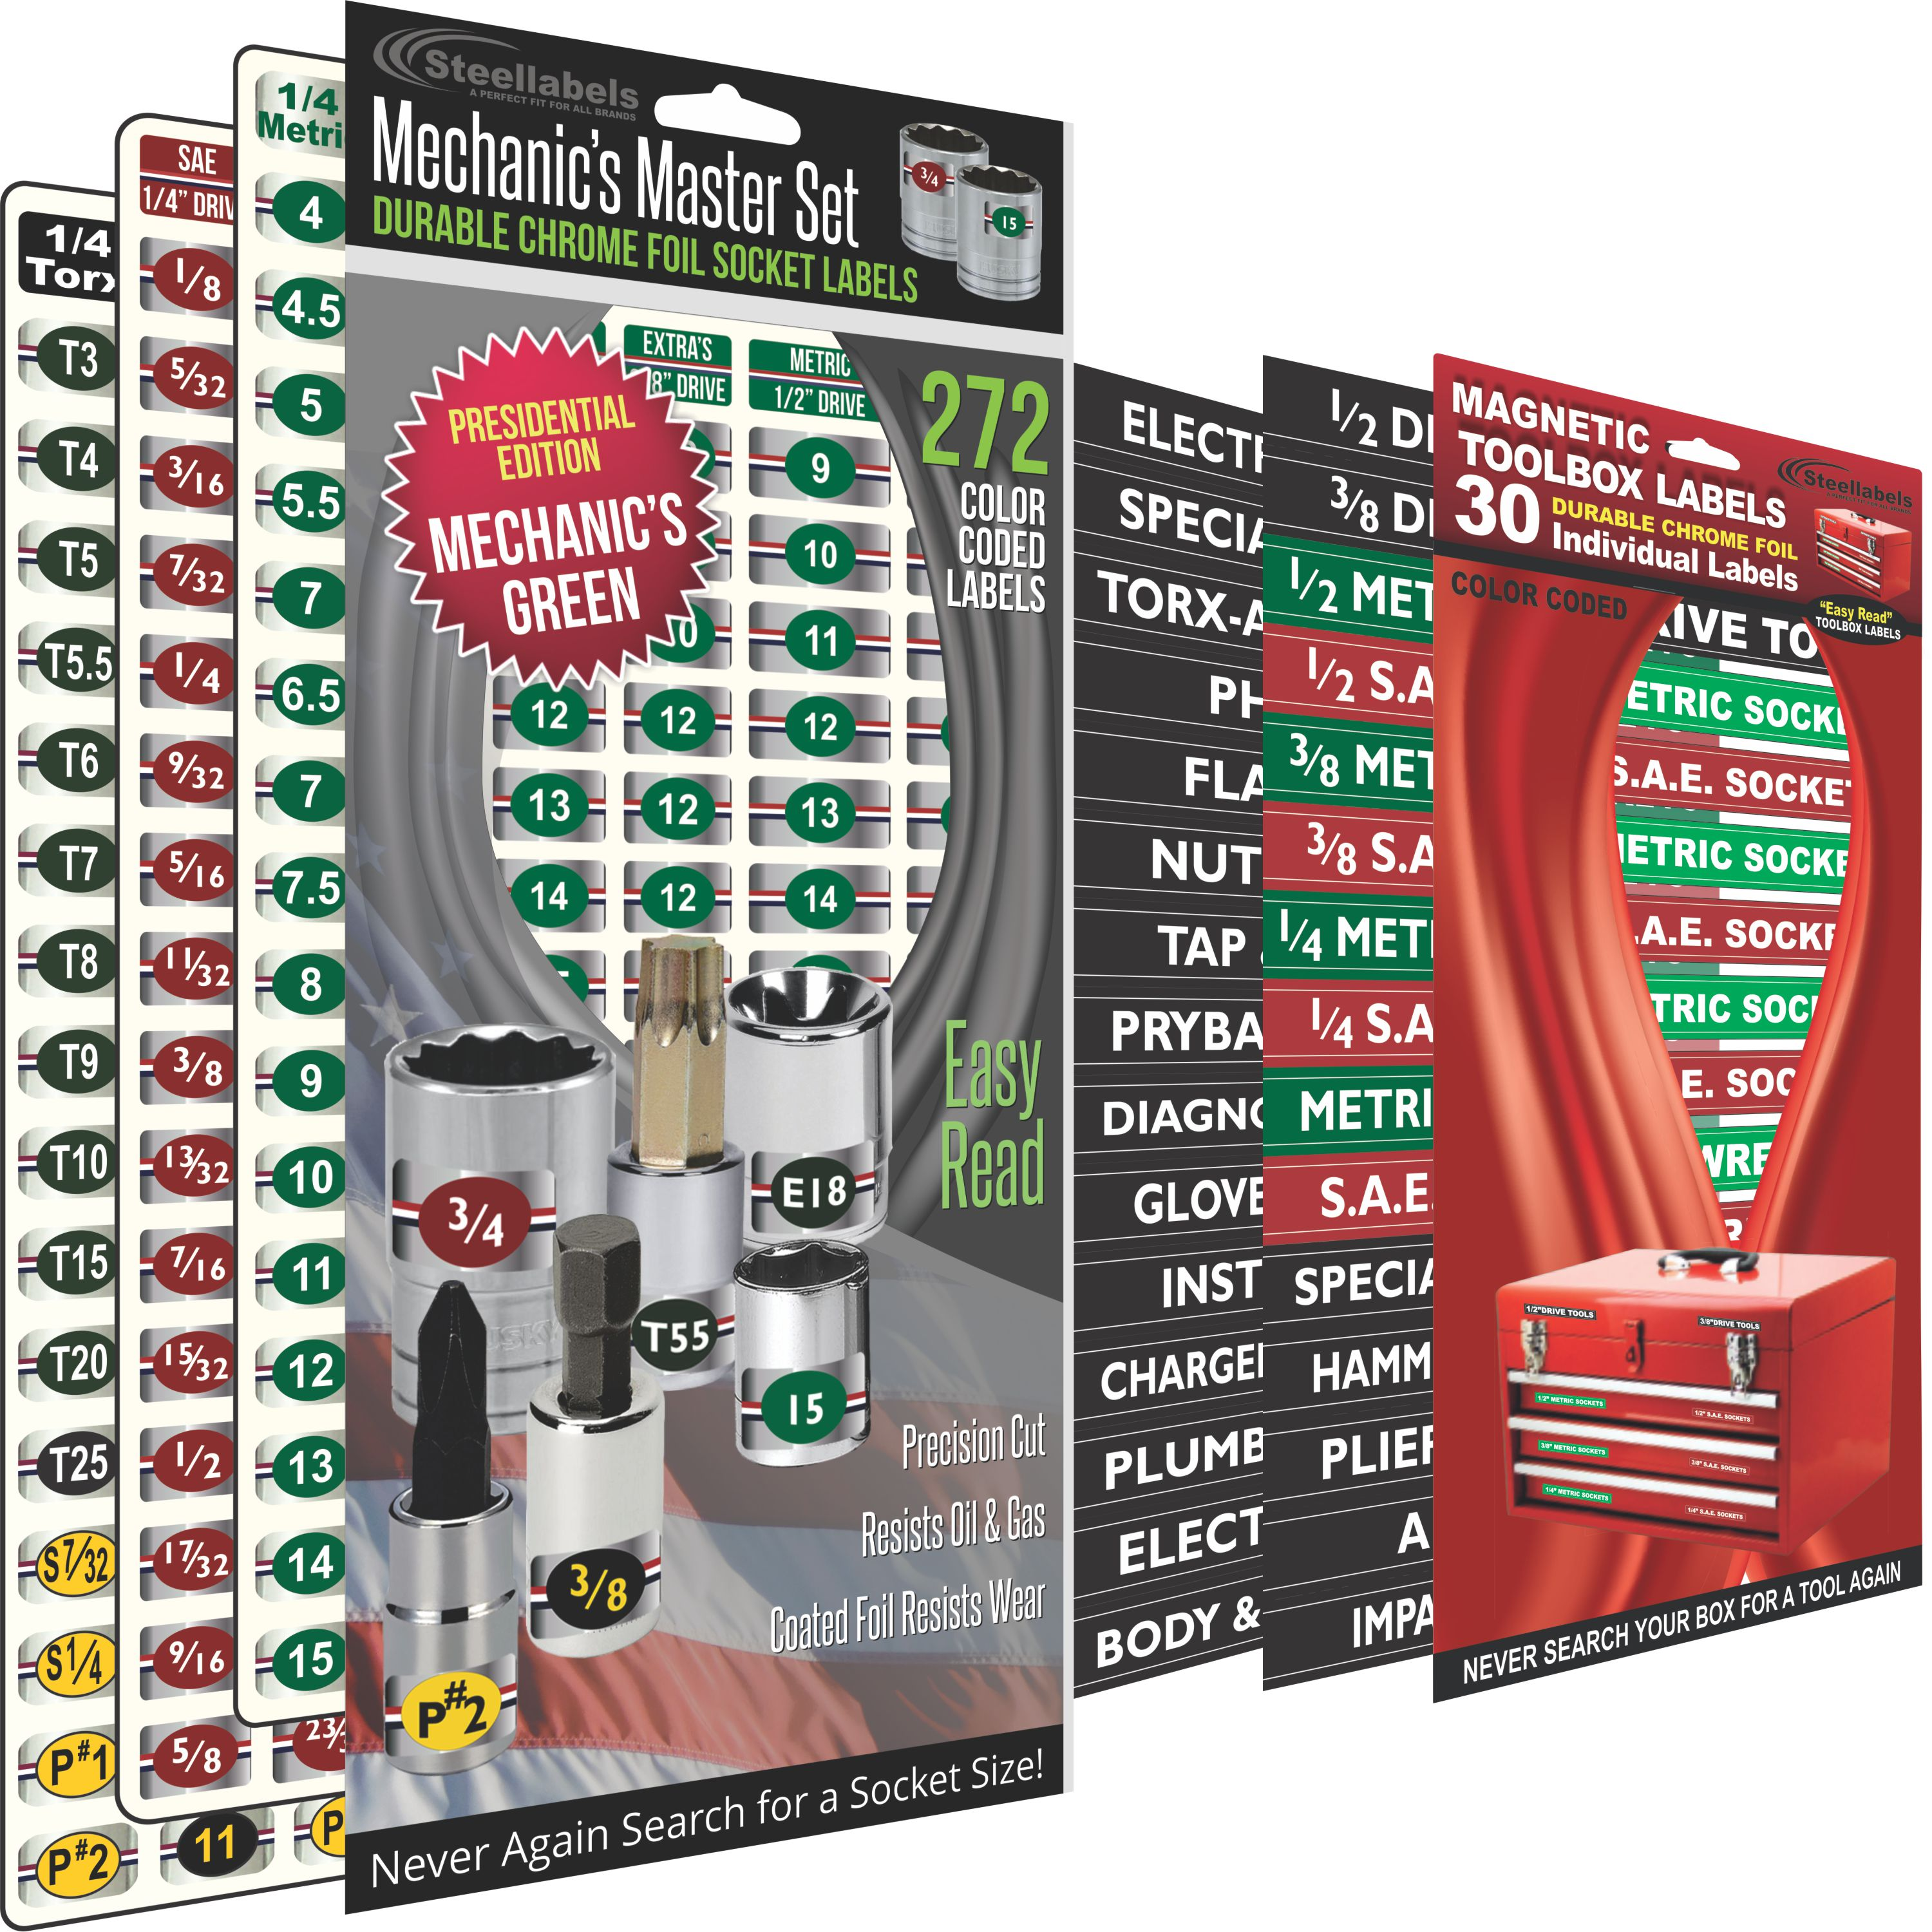 Steellabels - Combo Deal - Magnetic Toolbox Labels plus our best Master Set of Socket Labels - green series - for Metric, Torx & SAE tools, fits all Craftsman, Snap On, Mac Tools and Tool Chest